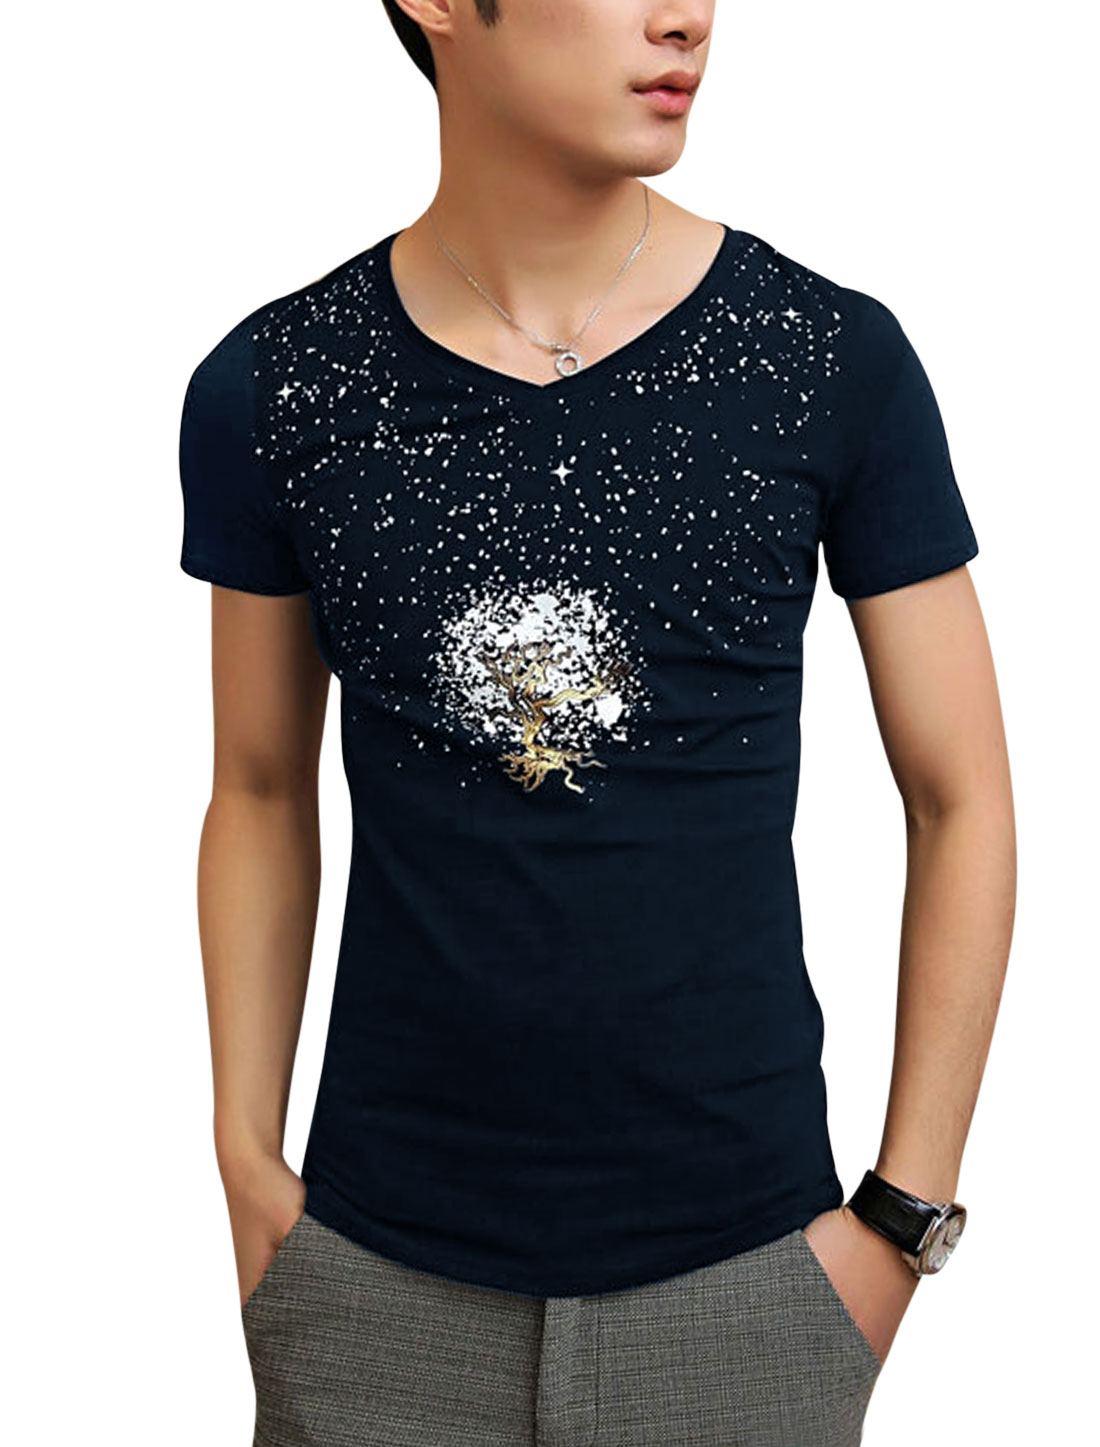 Men Stretch V Neck Short Sleeve Dots Printed Summer Tee Shirt Navy Blue S